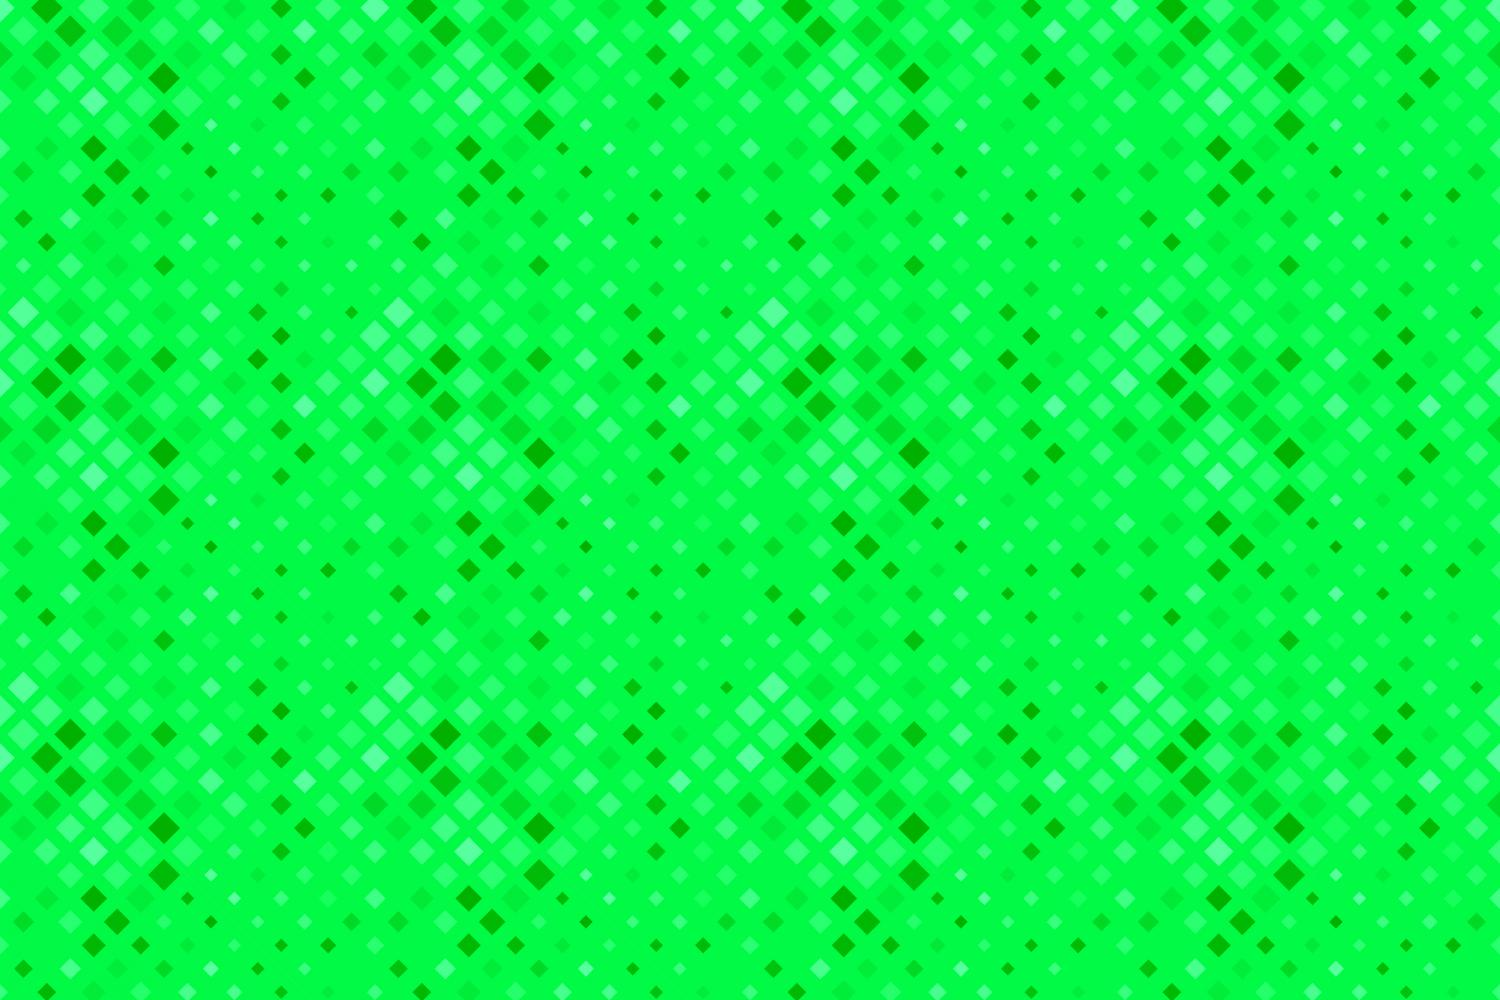 24 Seamless Green Square Patterns example image 25